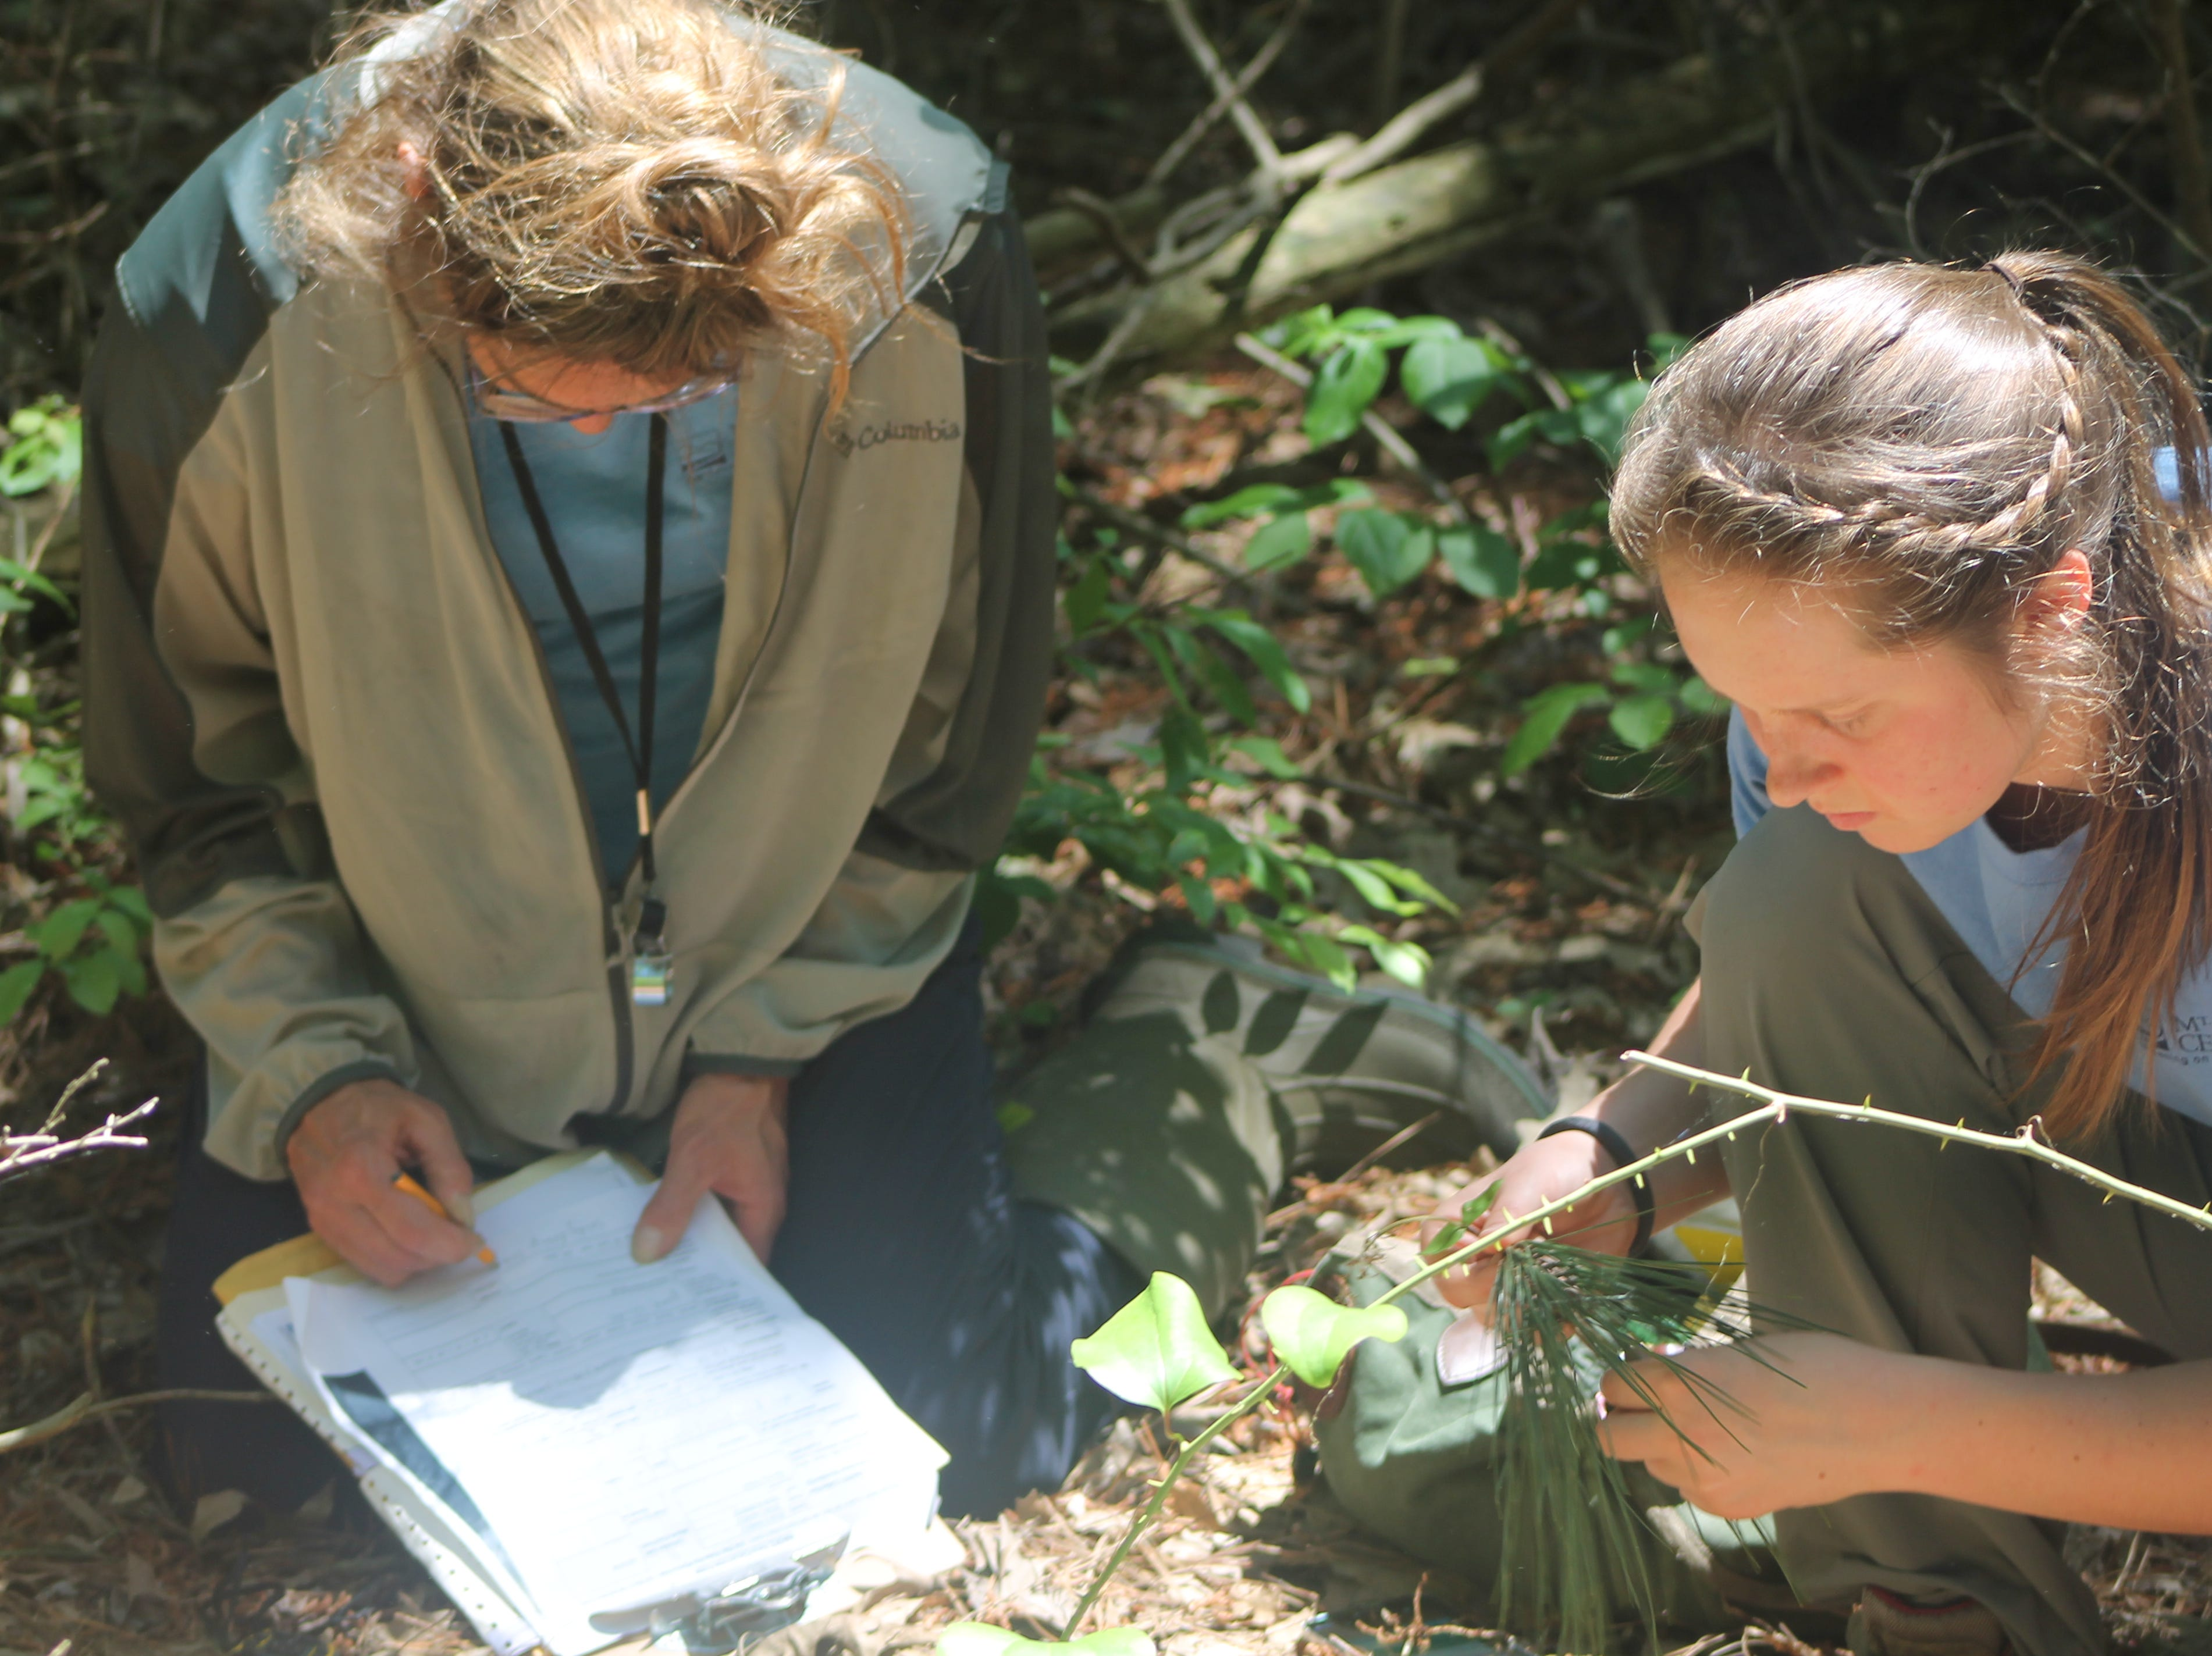 Adrienne Bozic, left, and Heather Titanich collect orchid data.